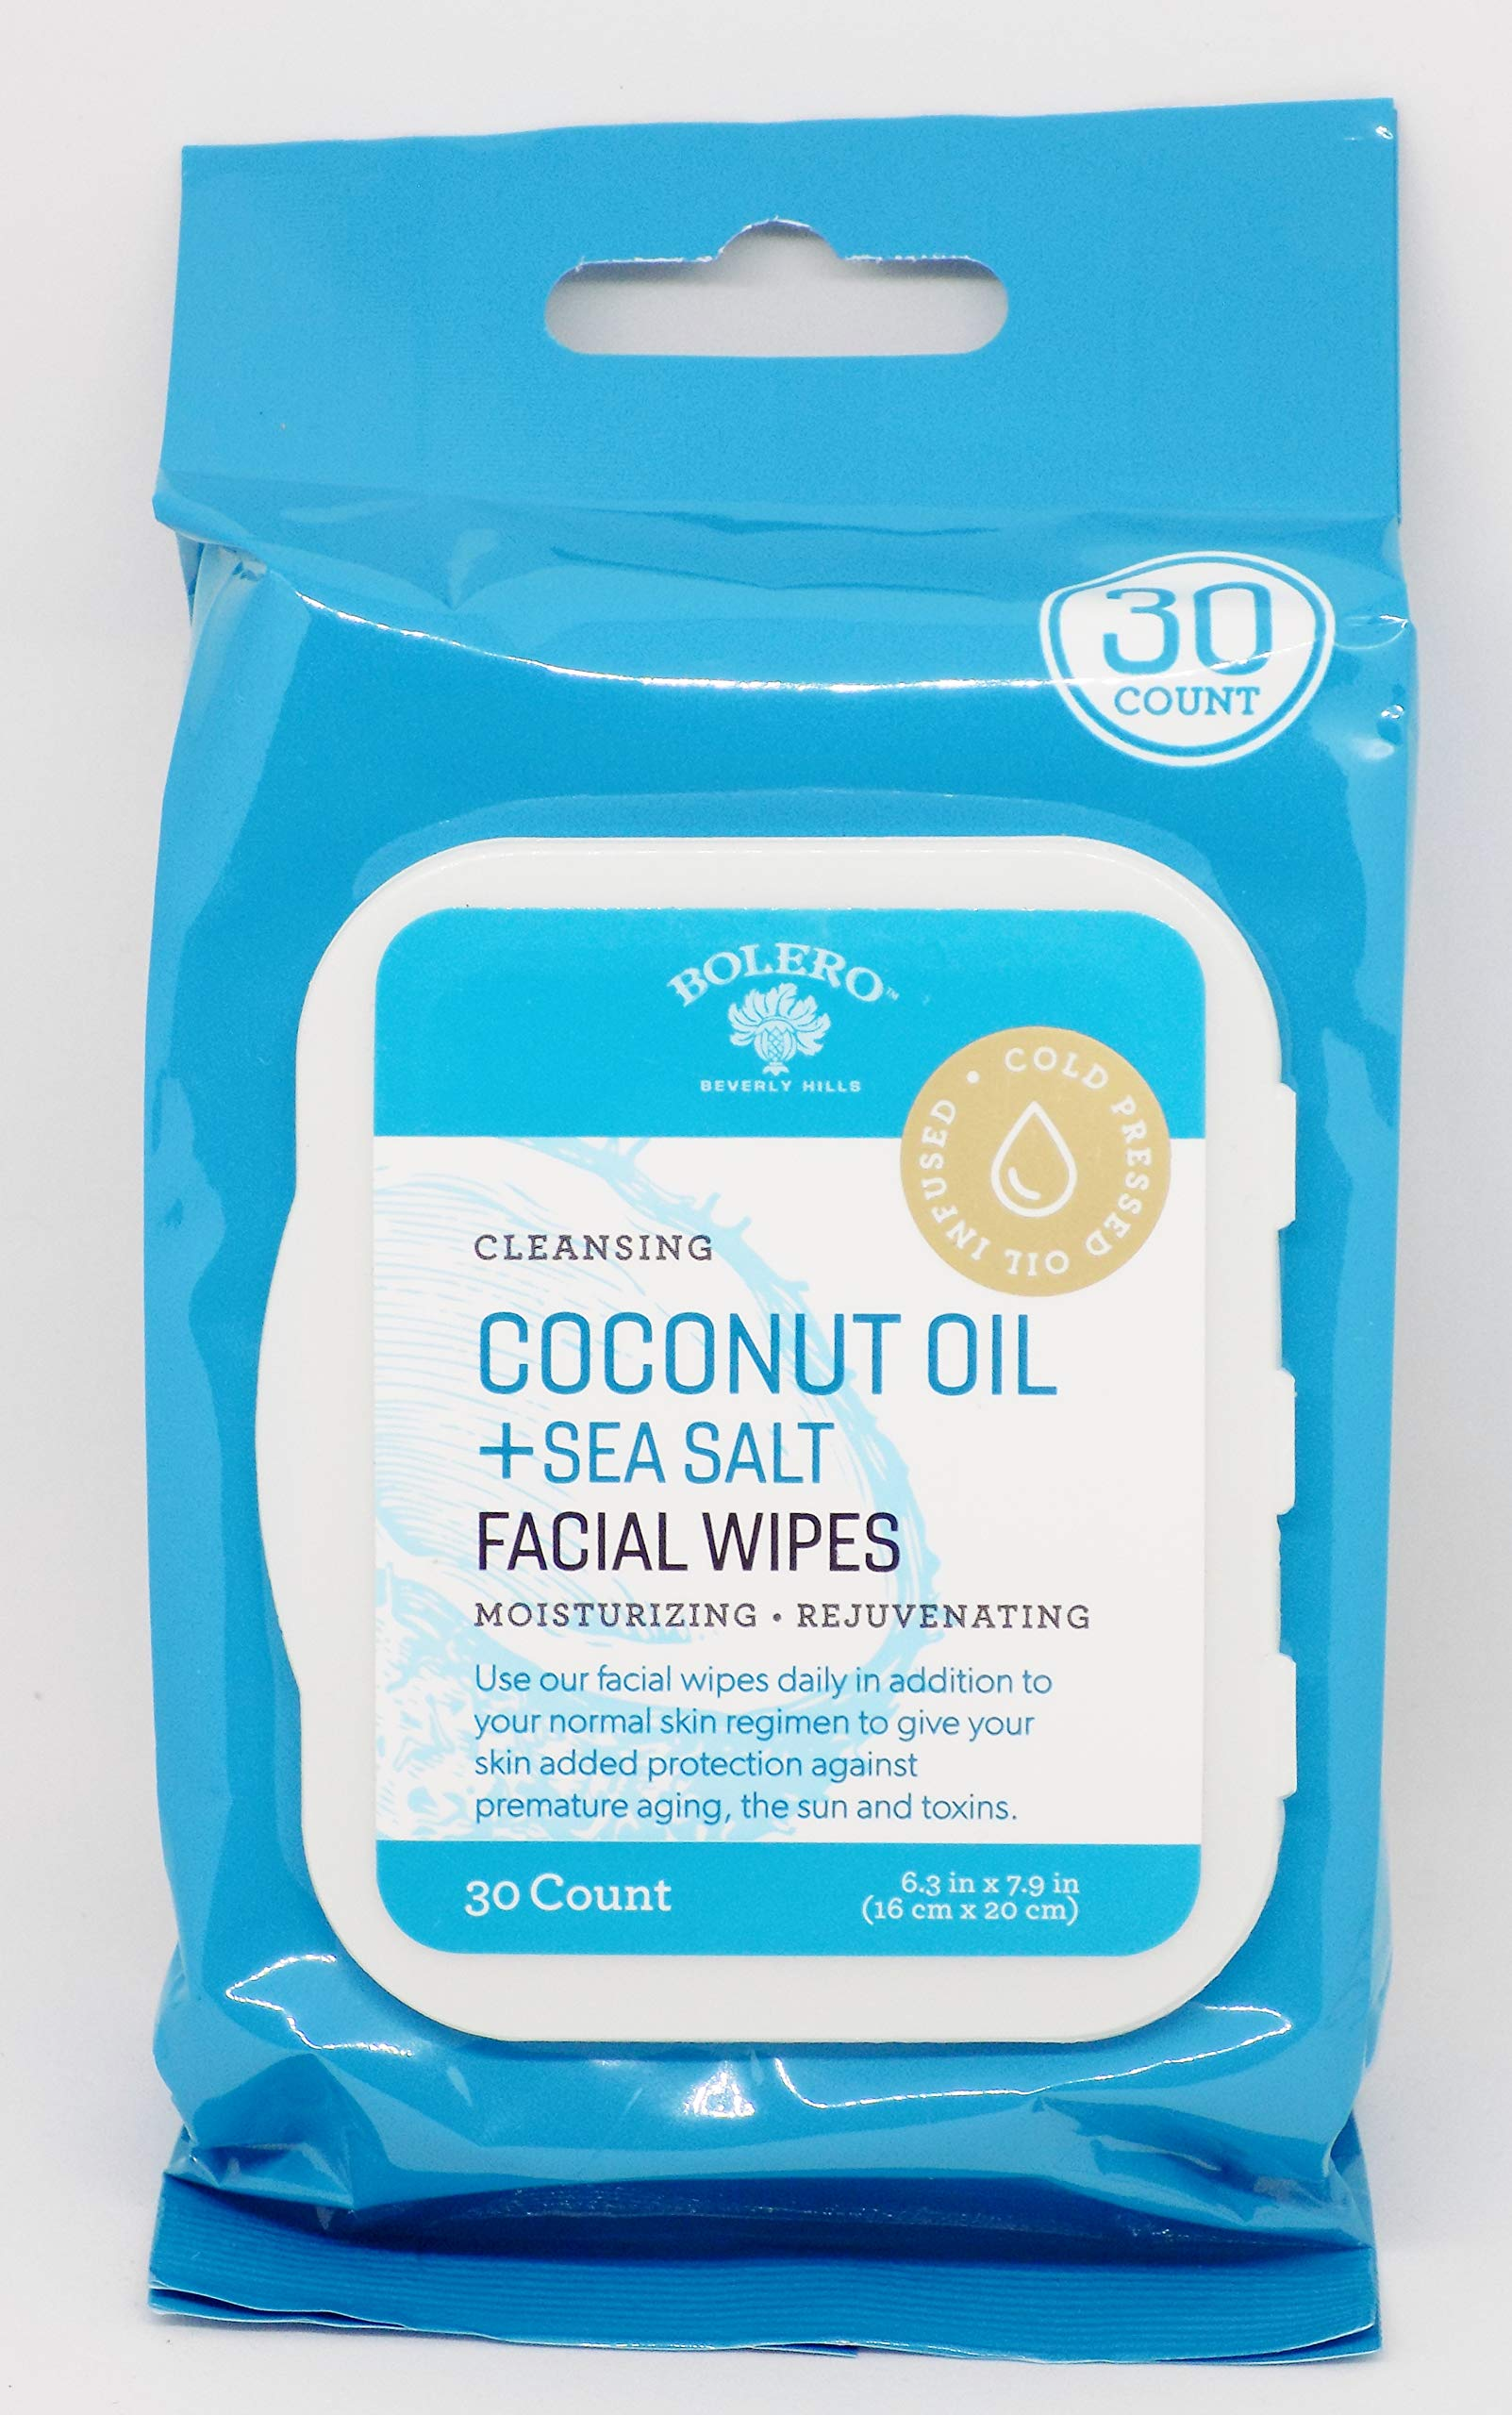 Bolero - Bolero Coconut Oil + Sea Salt Facial Wipes